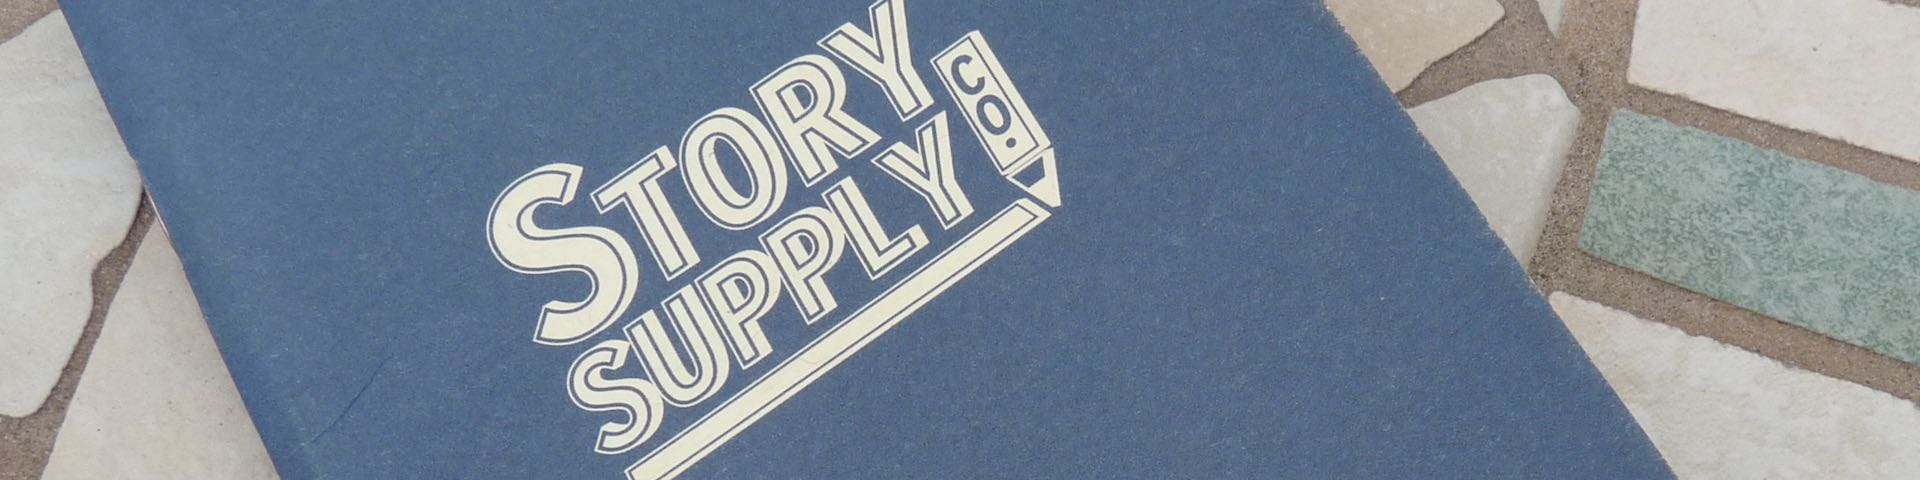 Story Supply Co notebook featured